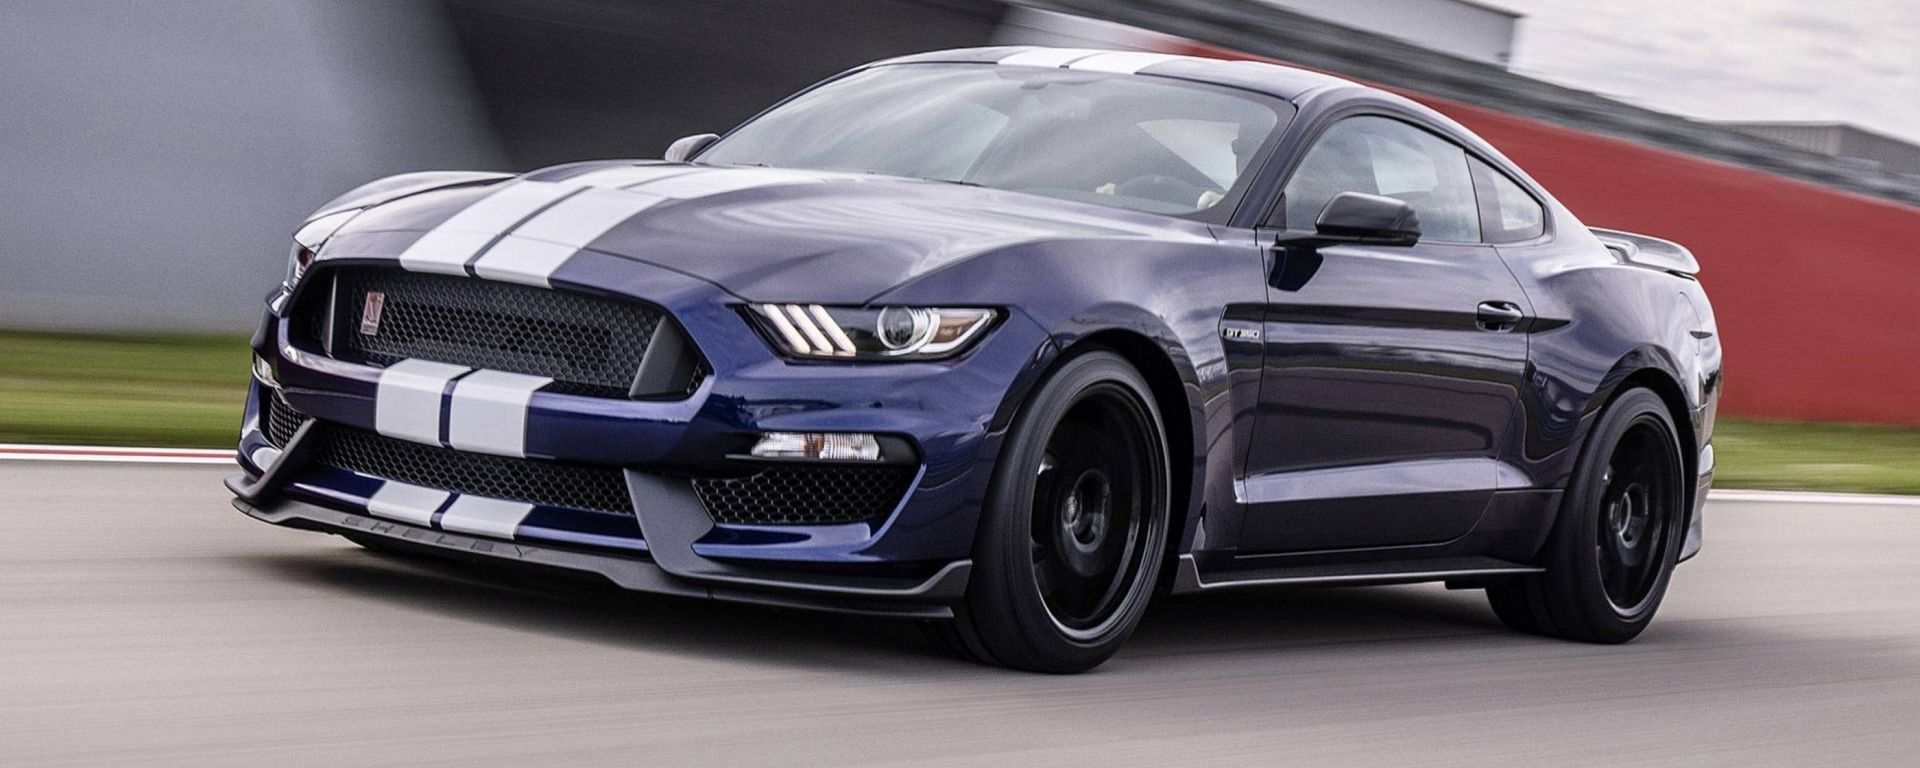 Ecco come cambia la Ford Mustang Shelby GT350